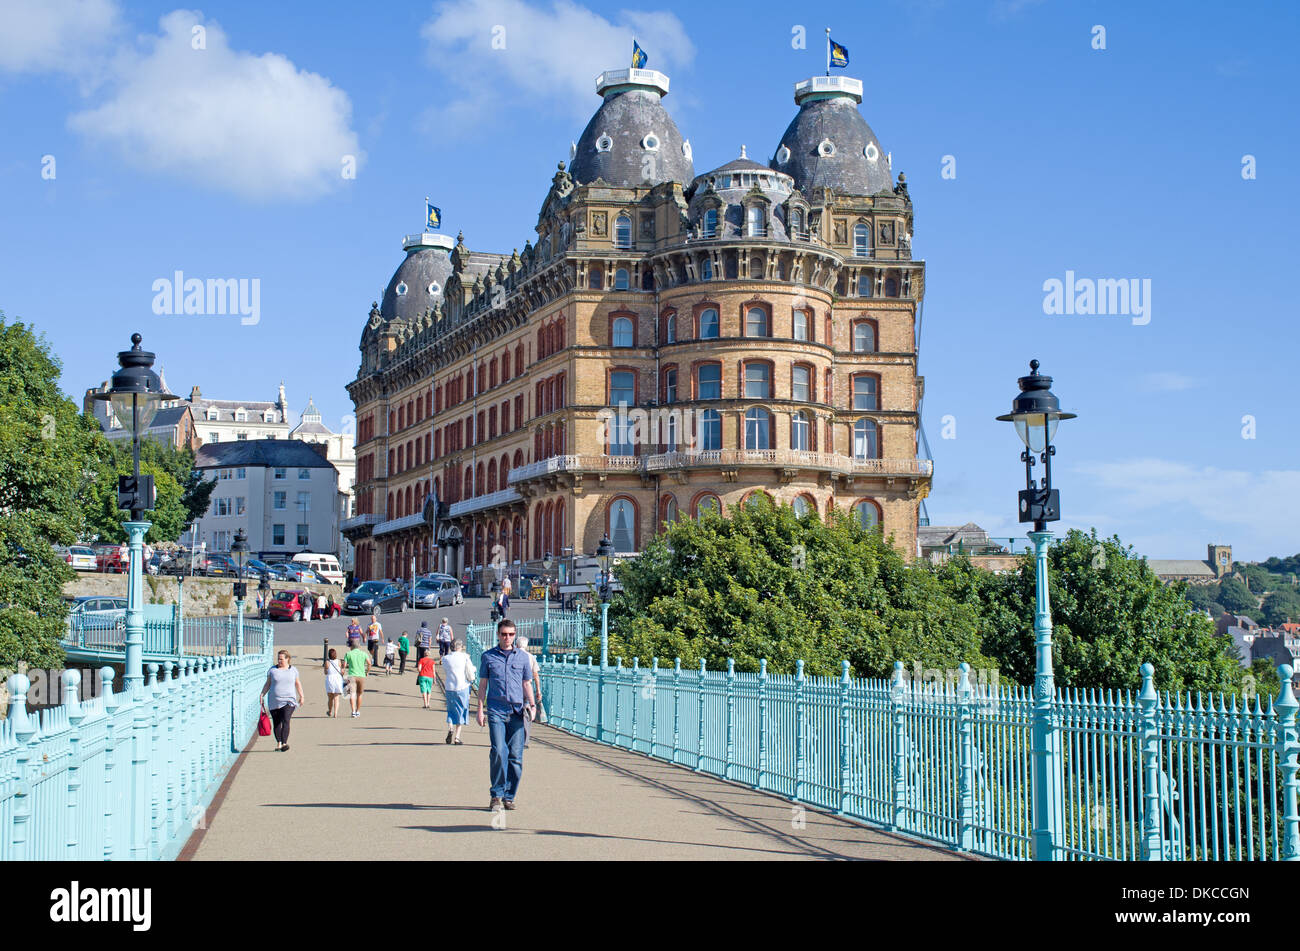 View of grand Hotel Scarborough North Yorkshire from foot bridge Stock Photo